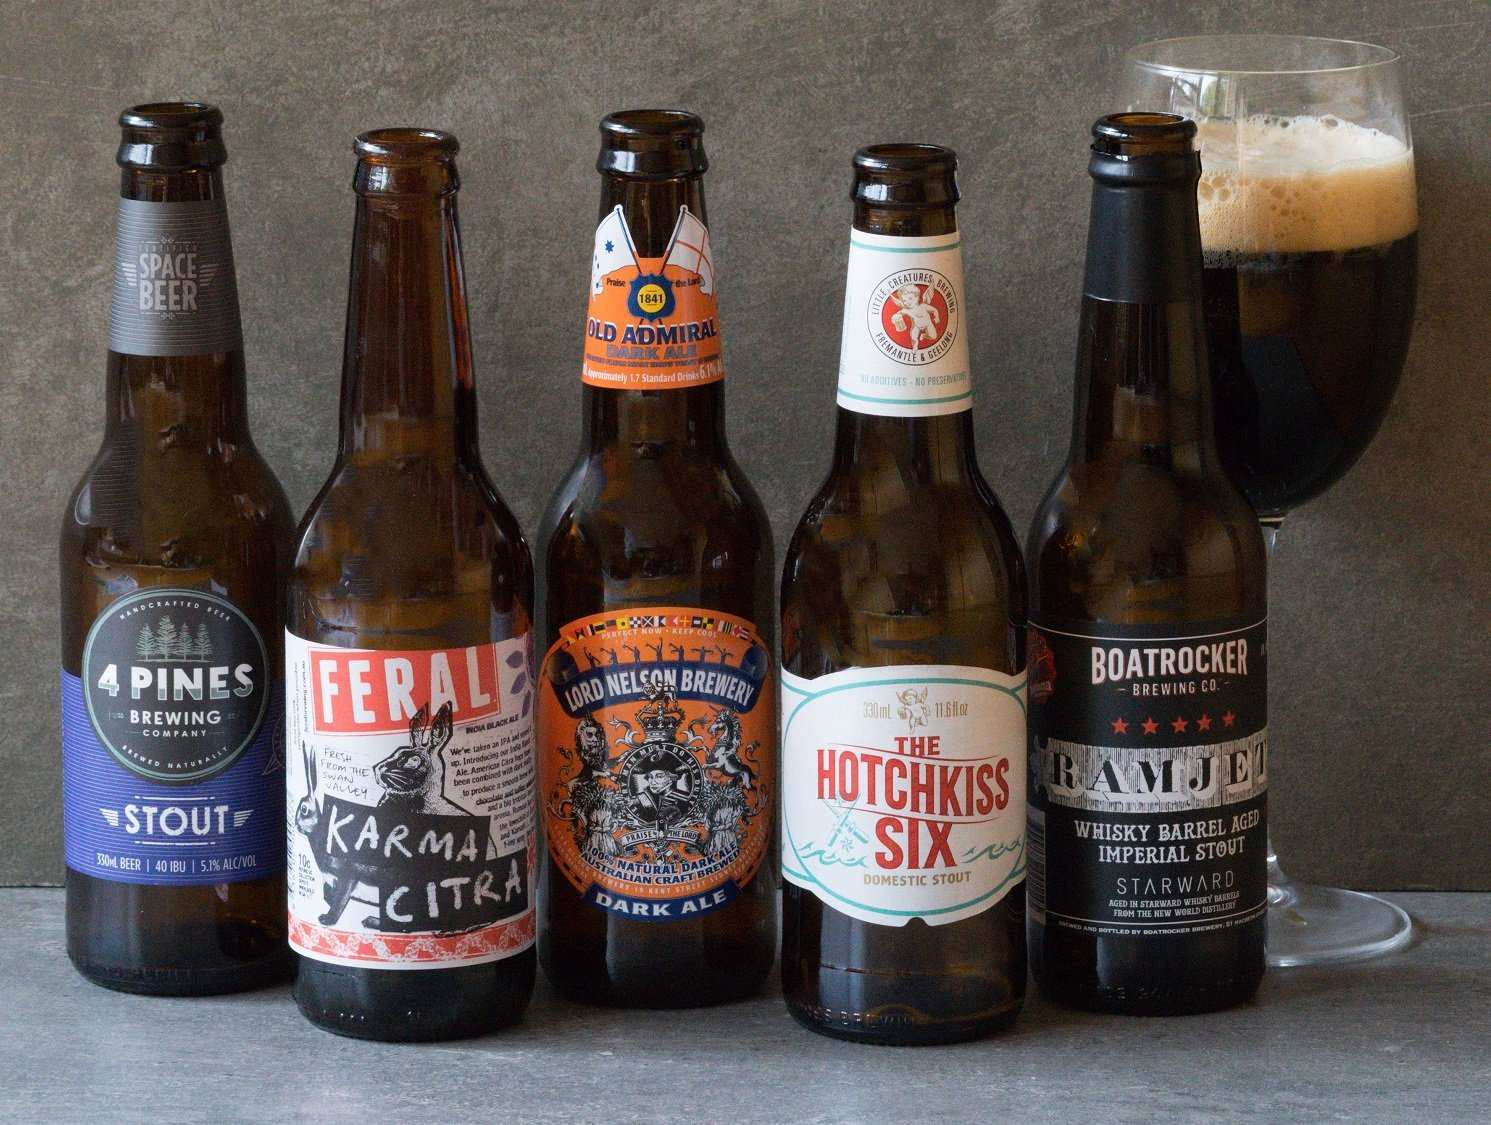 australian craft beer bottles lined up in a row